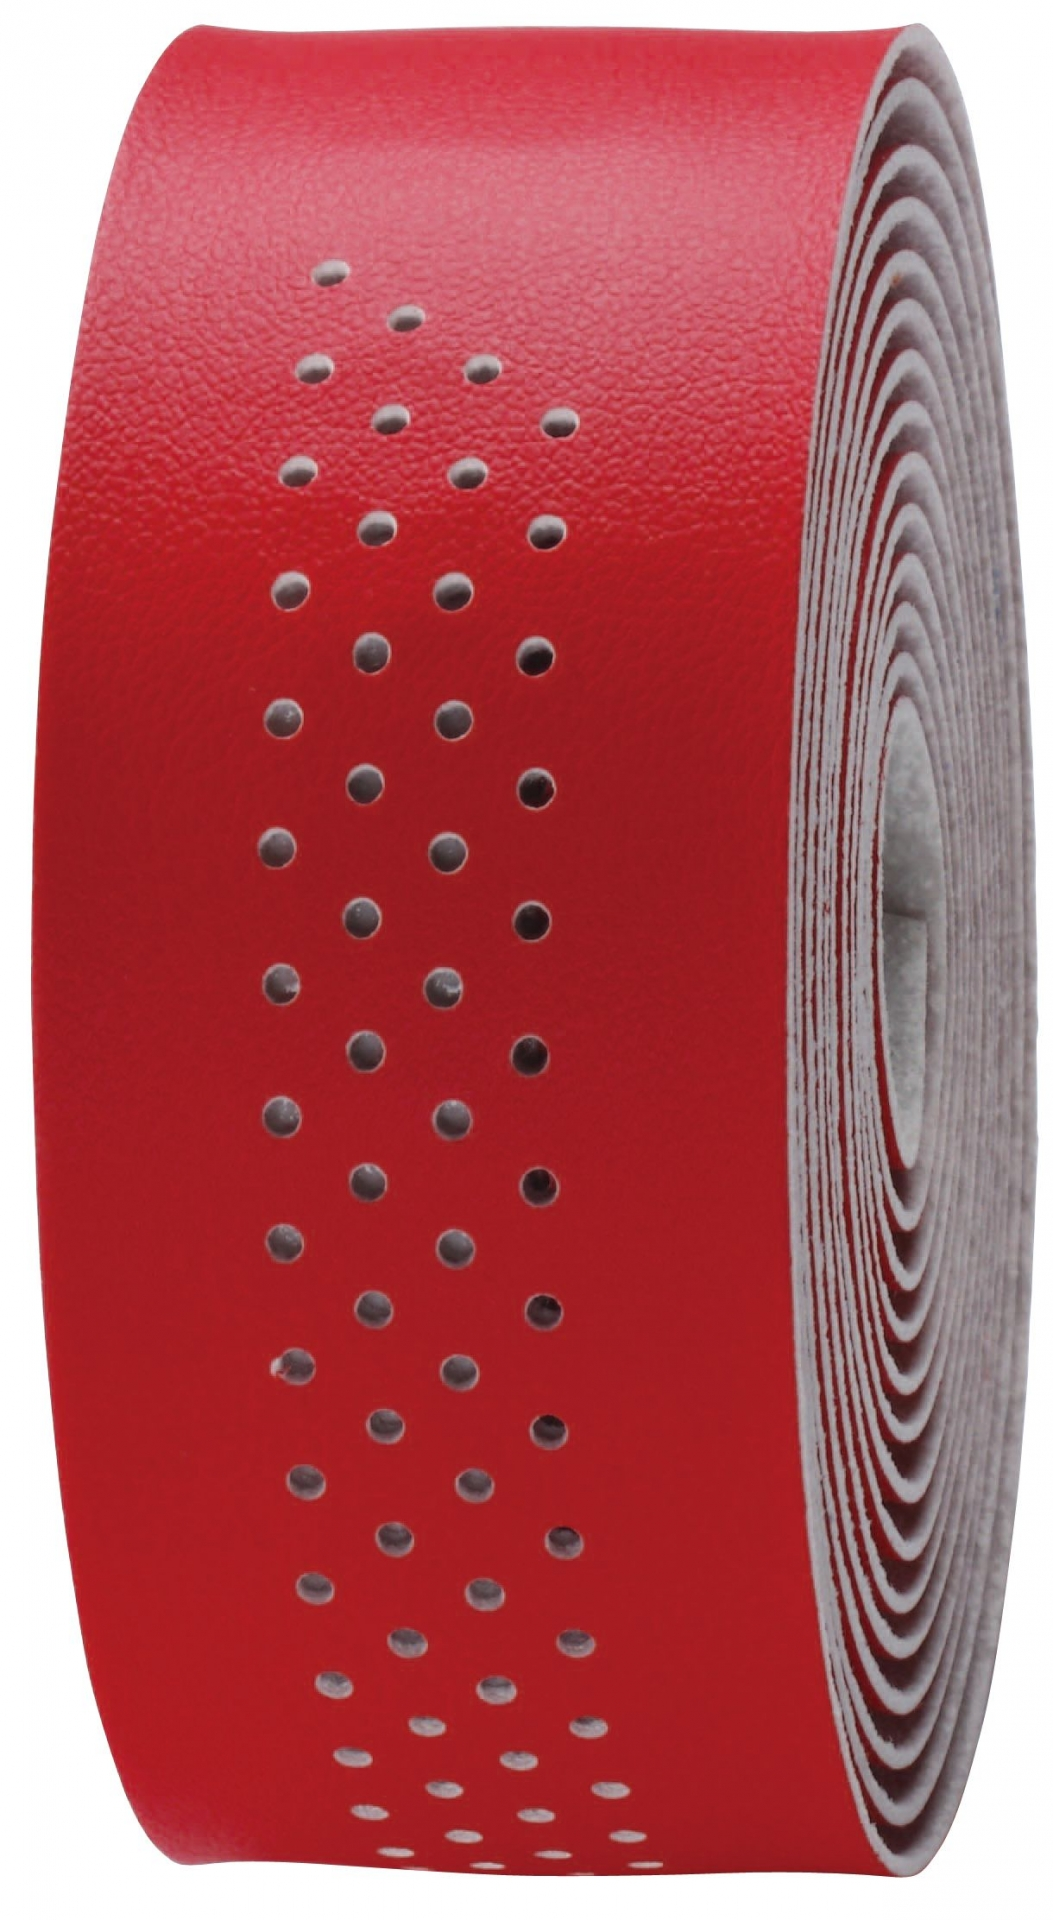 Ruban de cintre BBB SpeedRibbon (rouge) - BHT-12